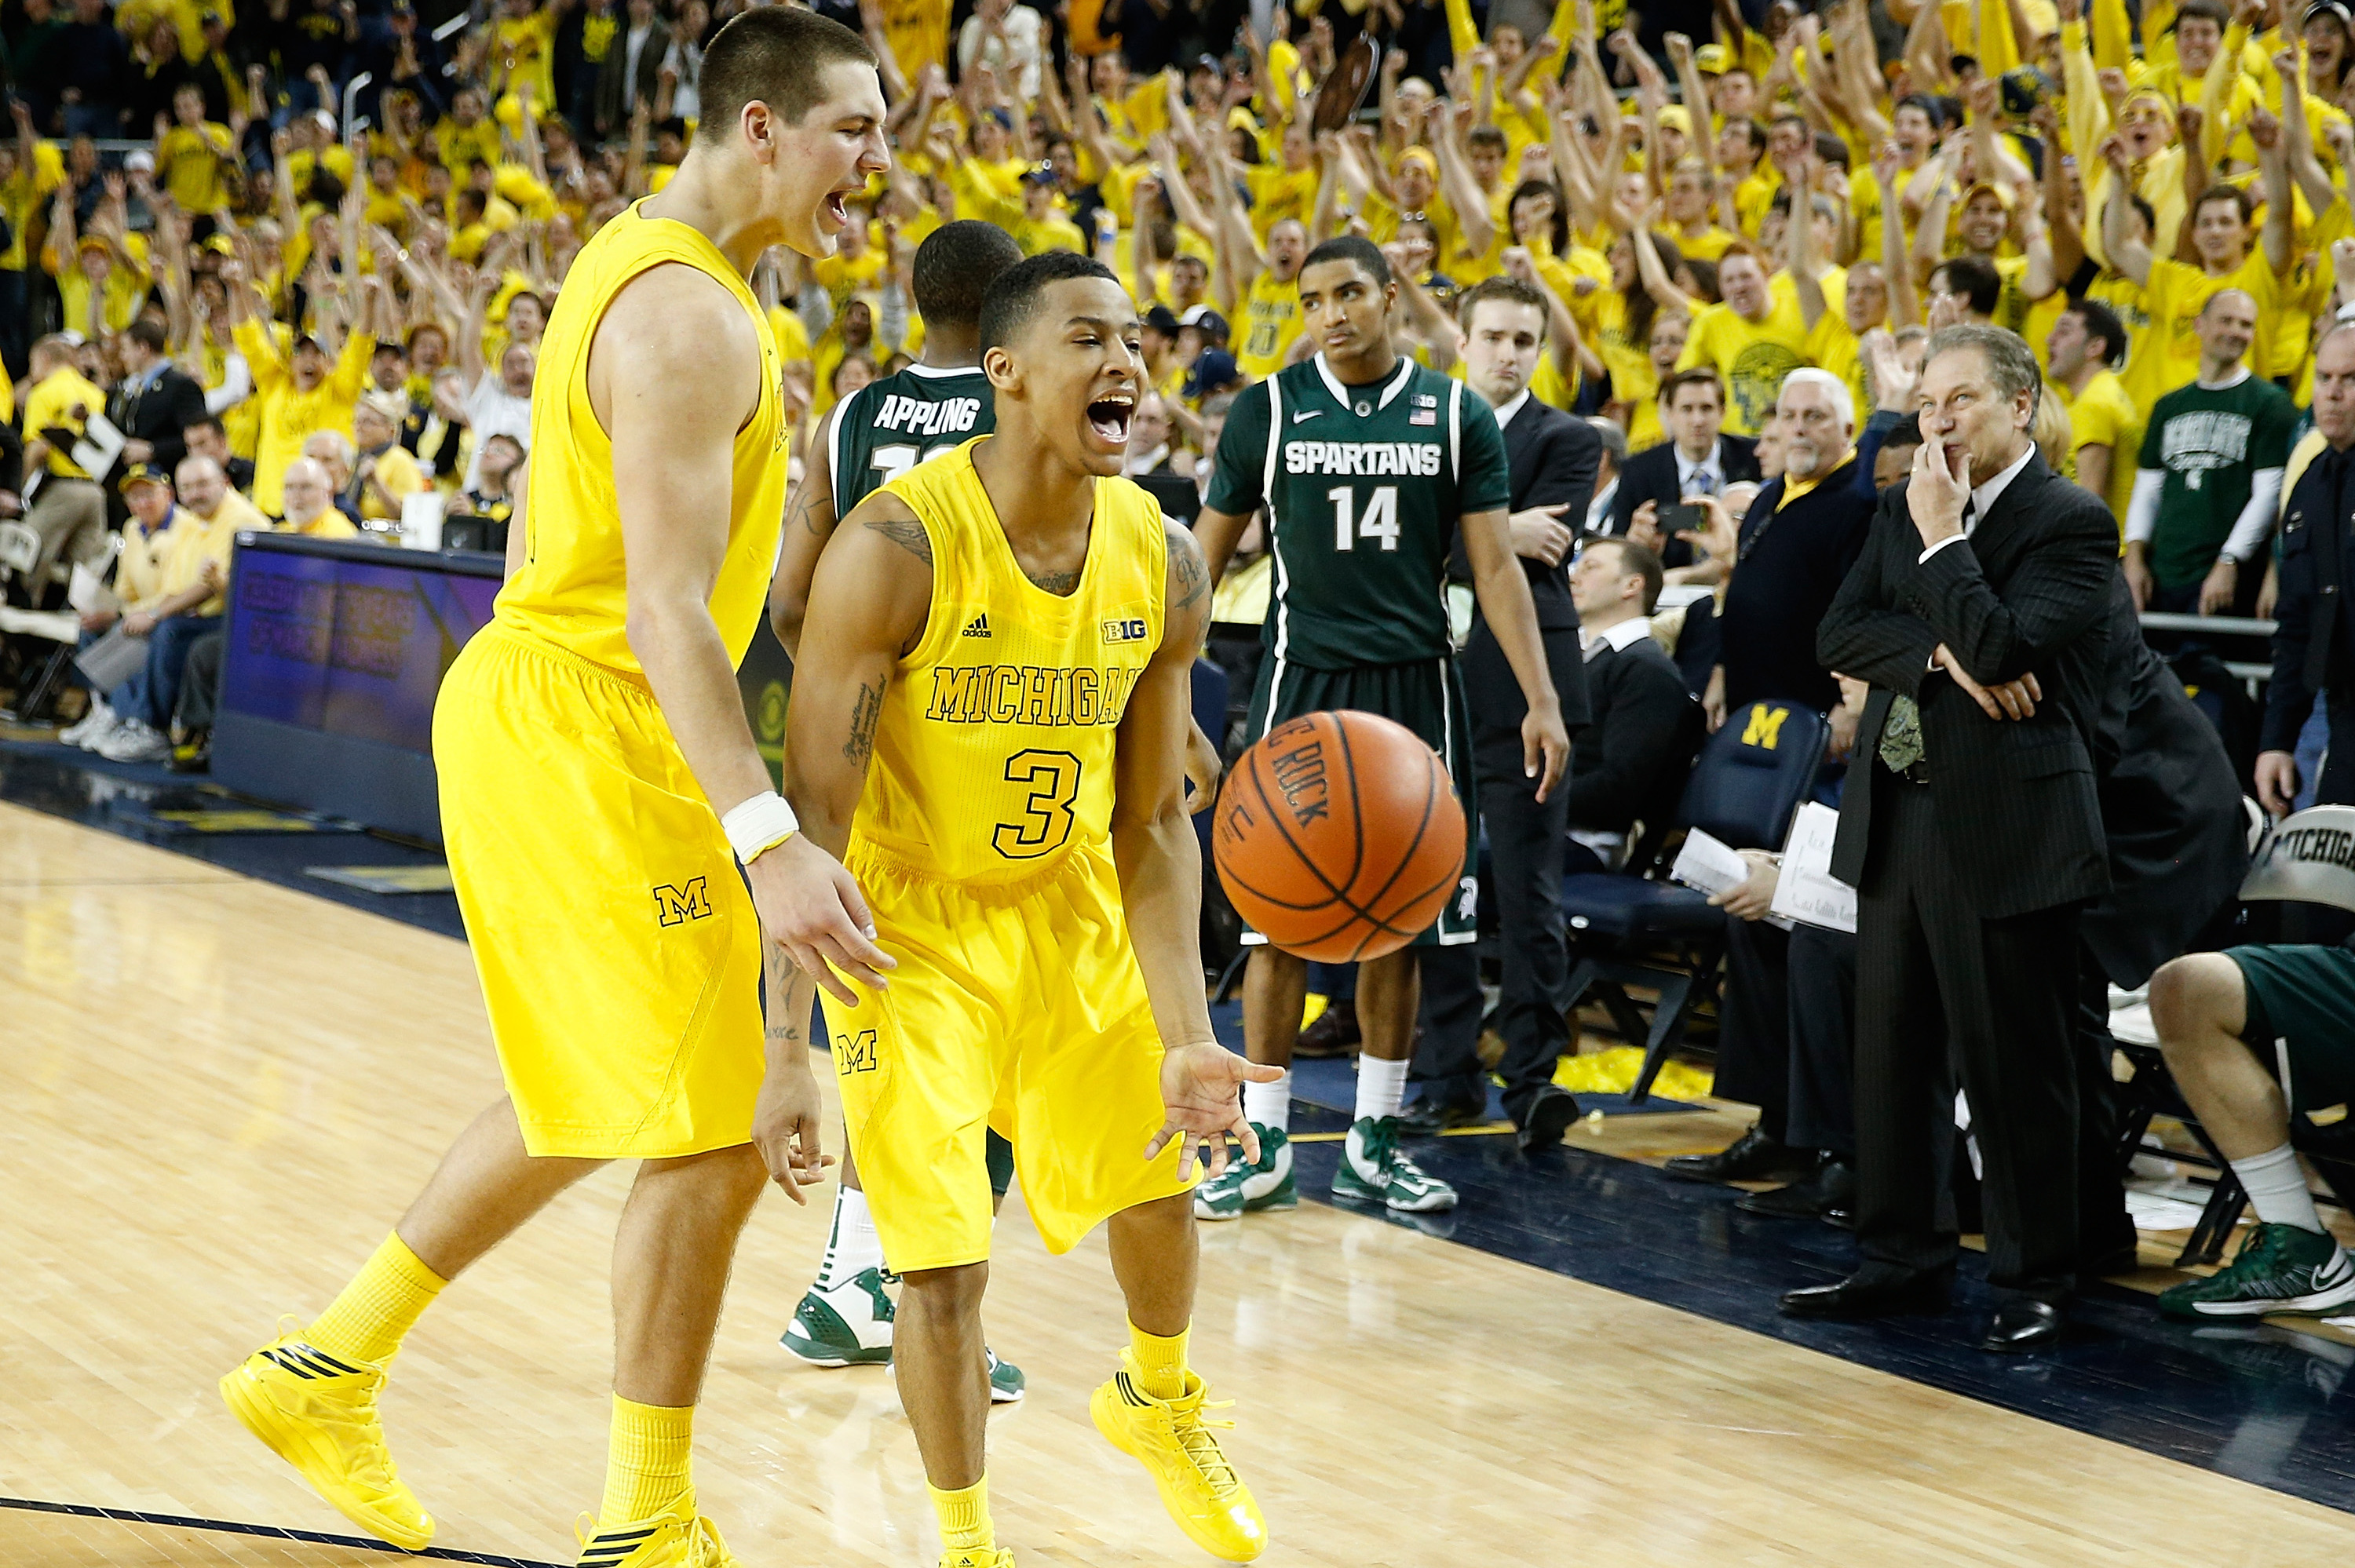 Michigan Basketball 2013 14 Schedule 5 Must See Games